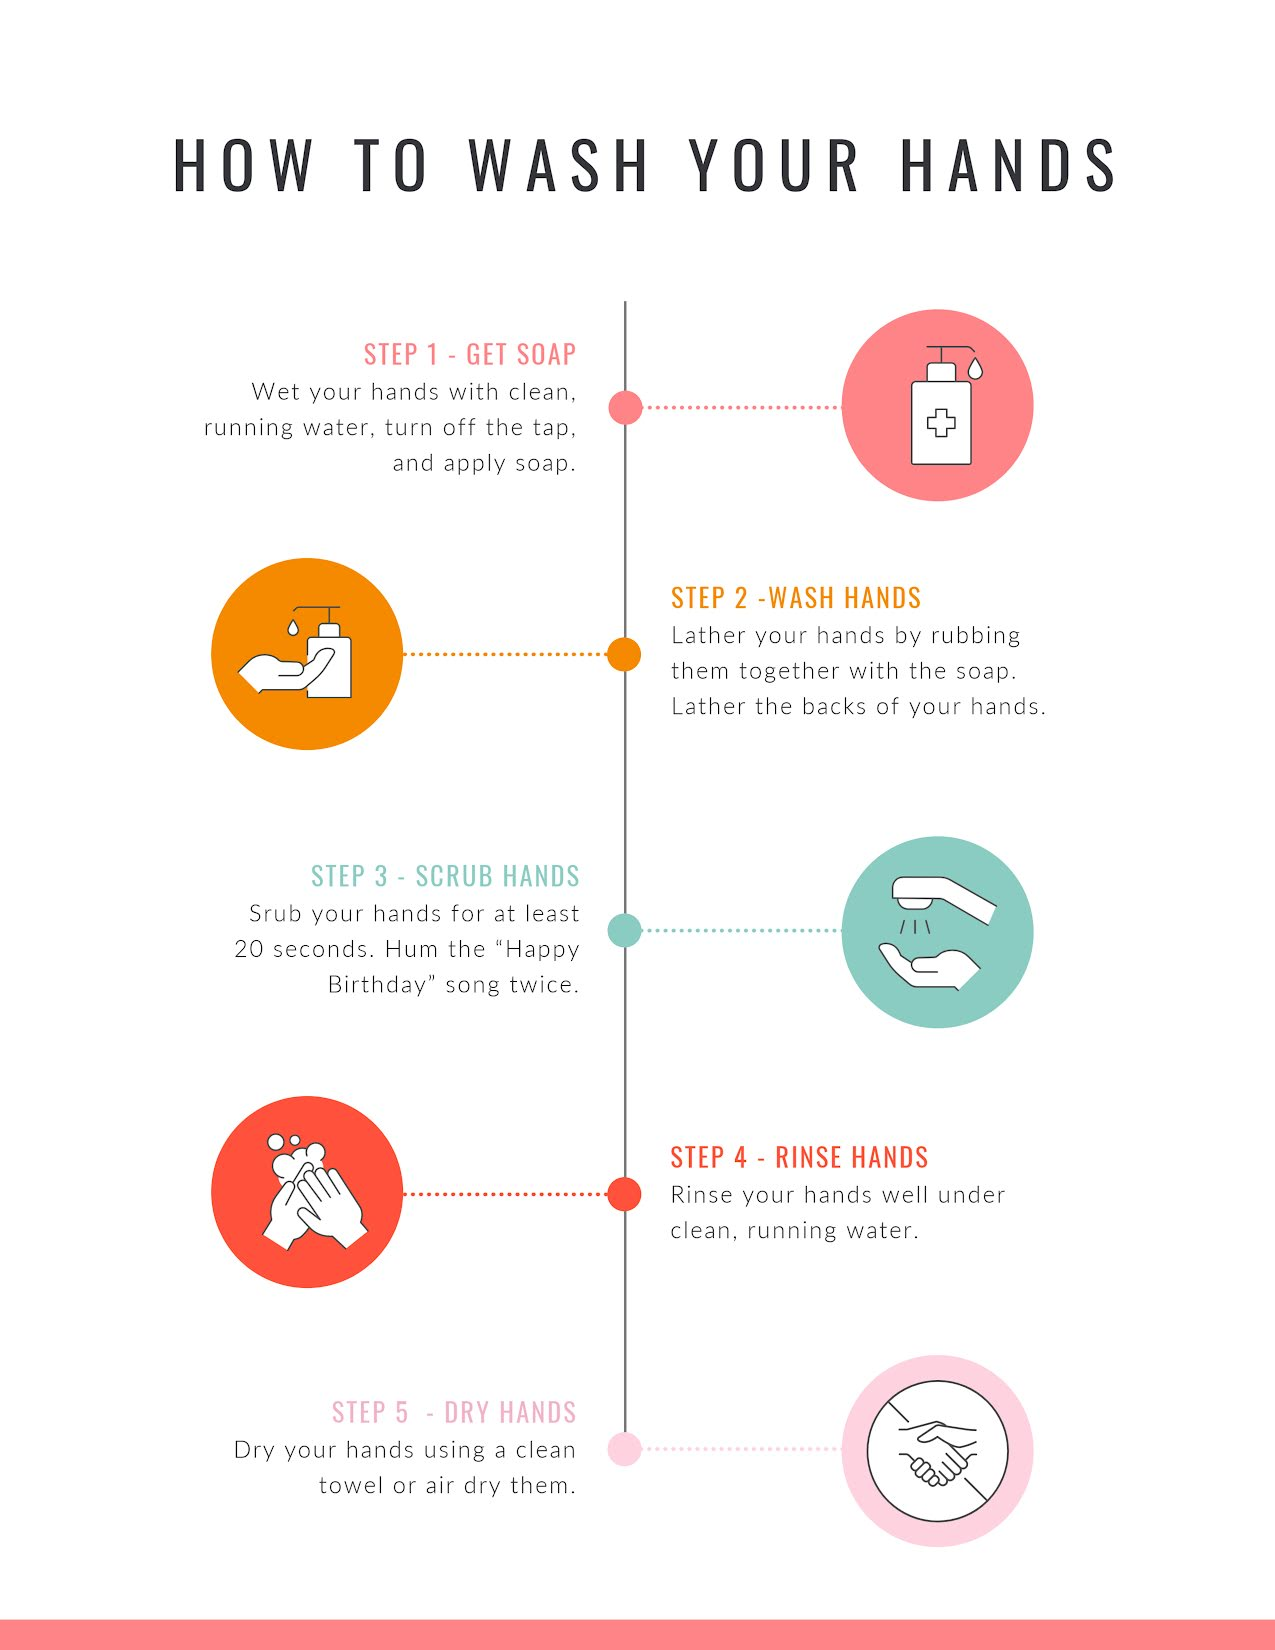 How to Wash Your Hands - Infographic Template